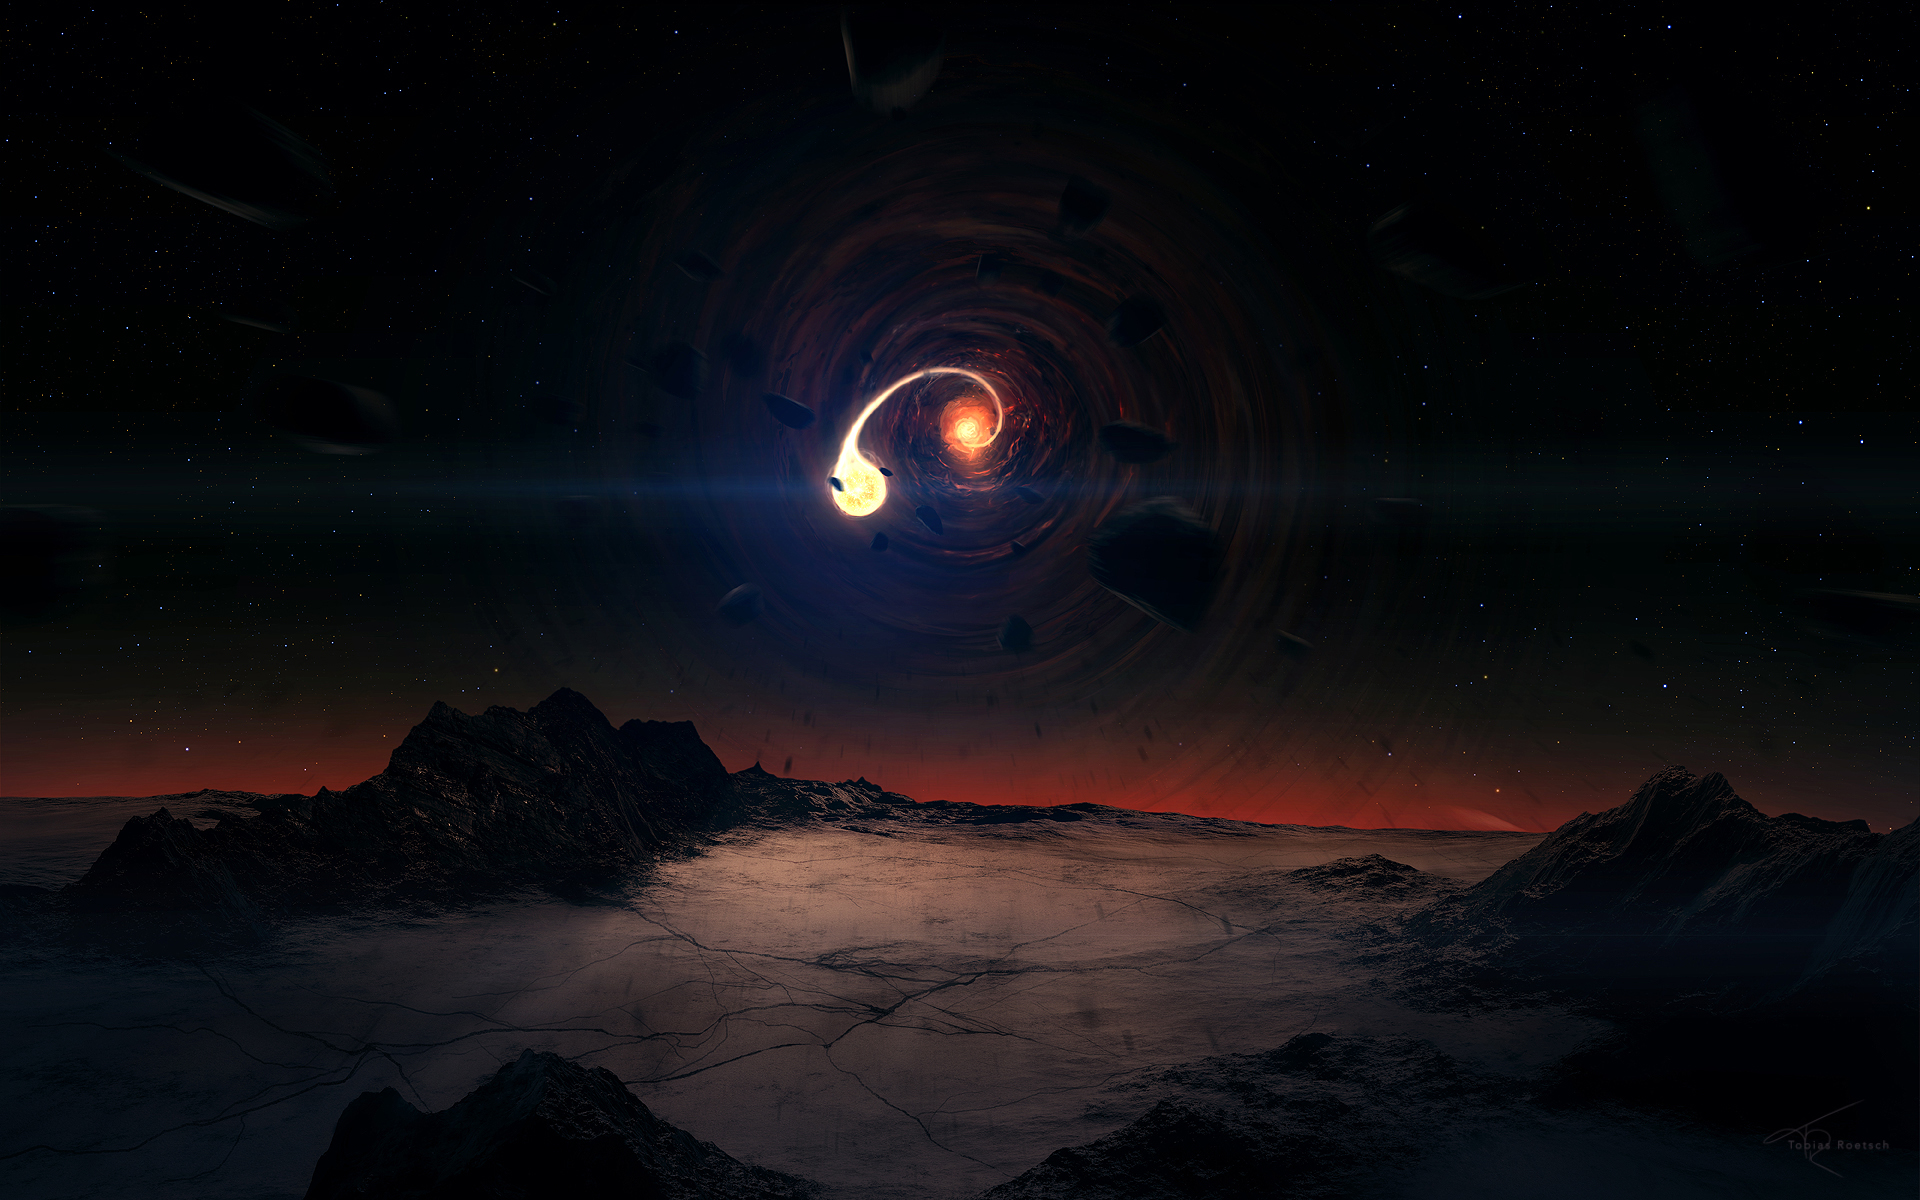 Black Hole Scene Wallpapers HD Wallpapers 1920x1200